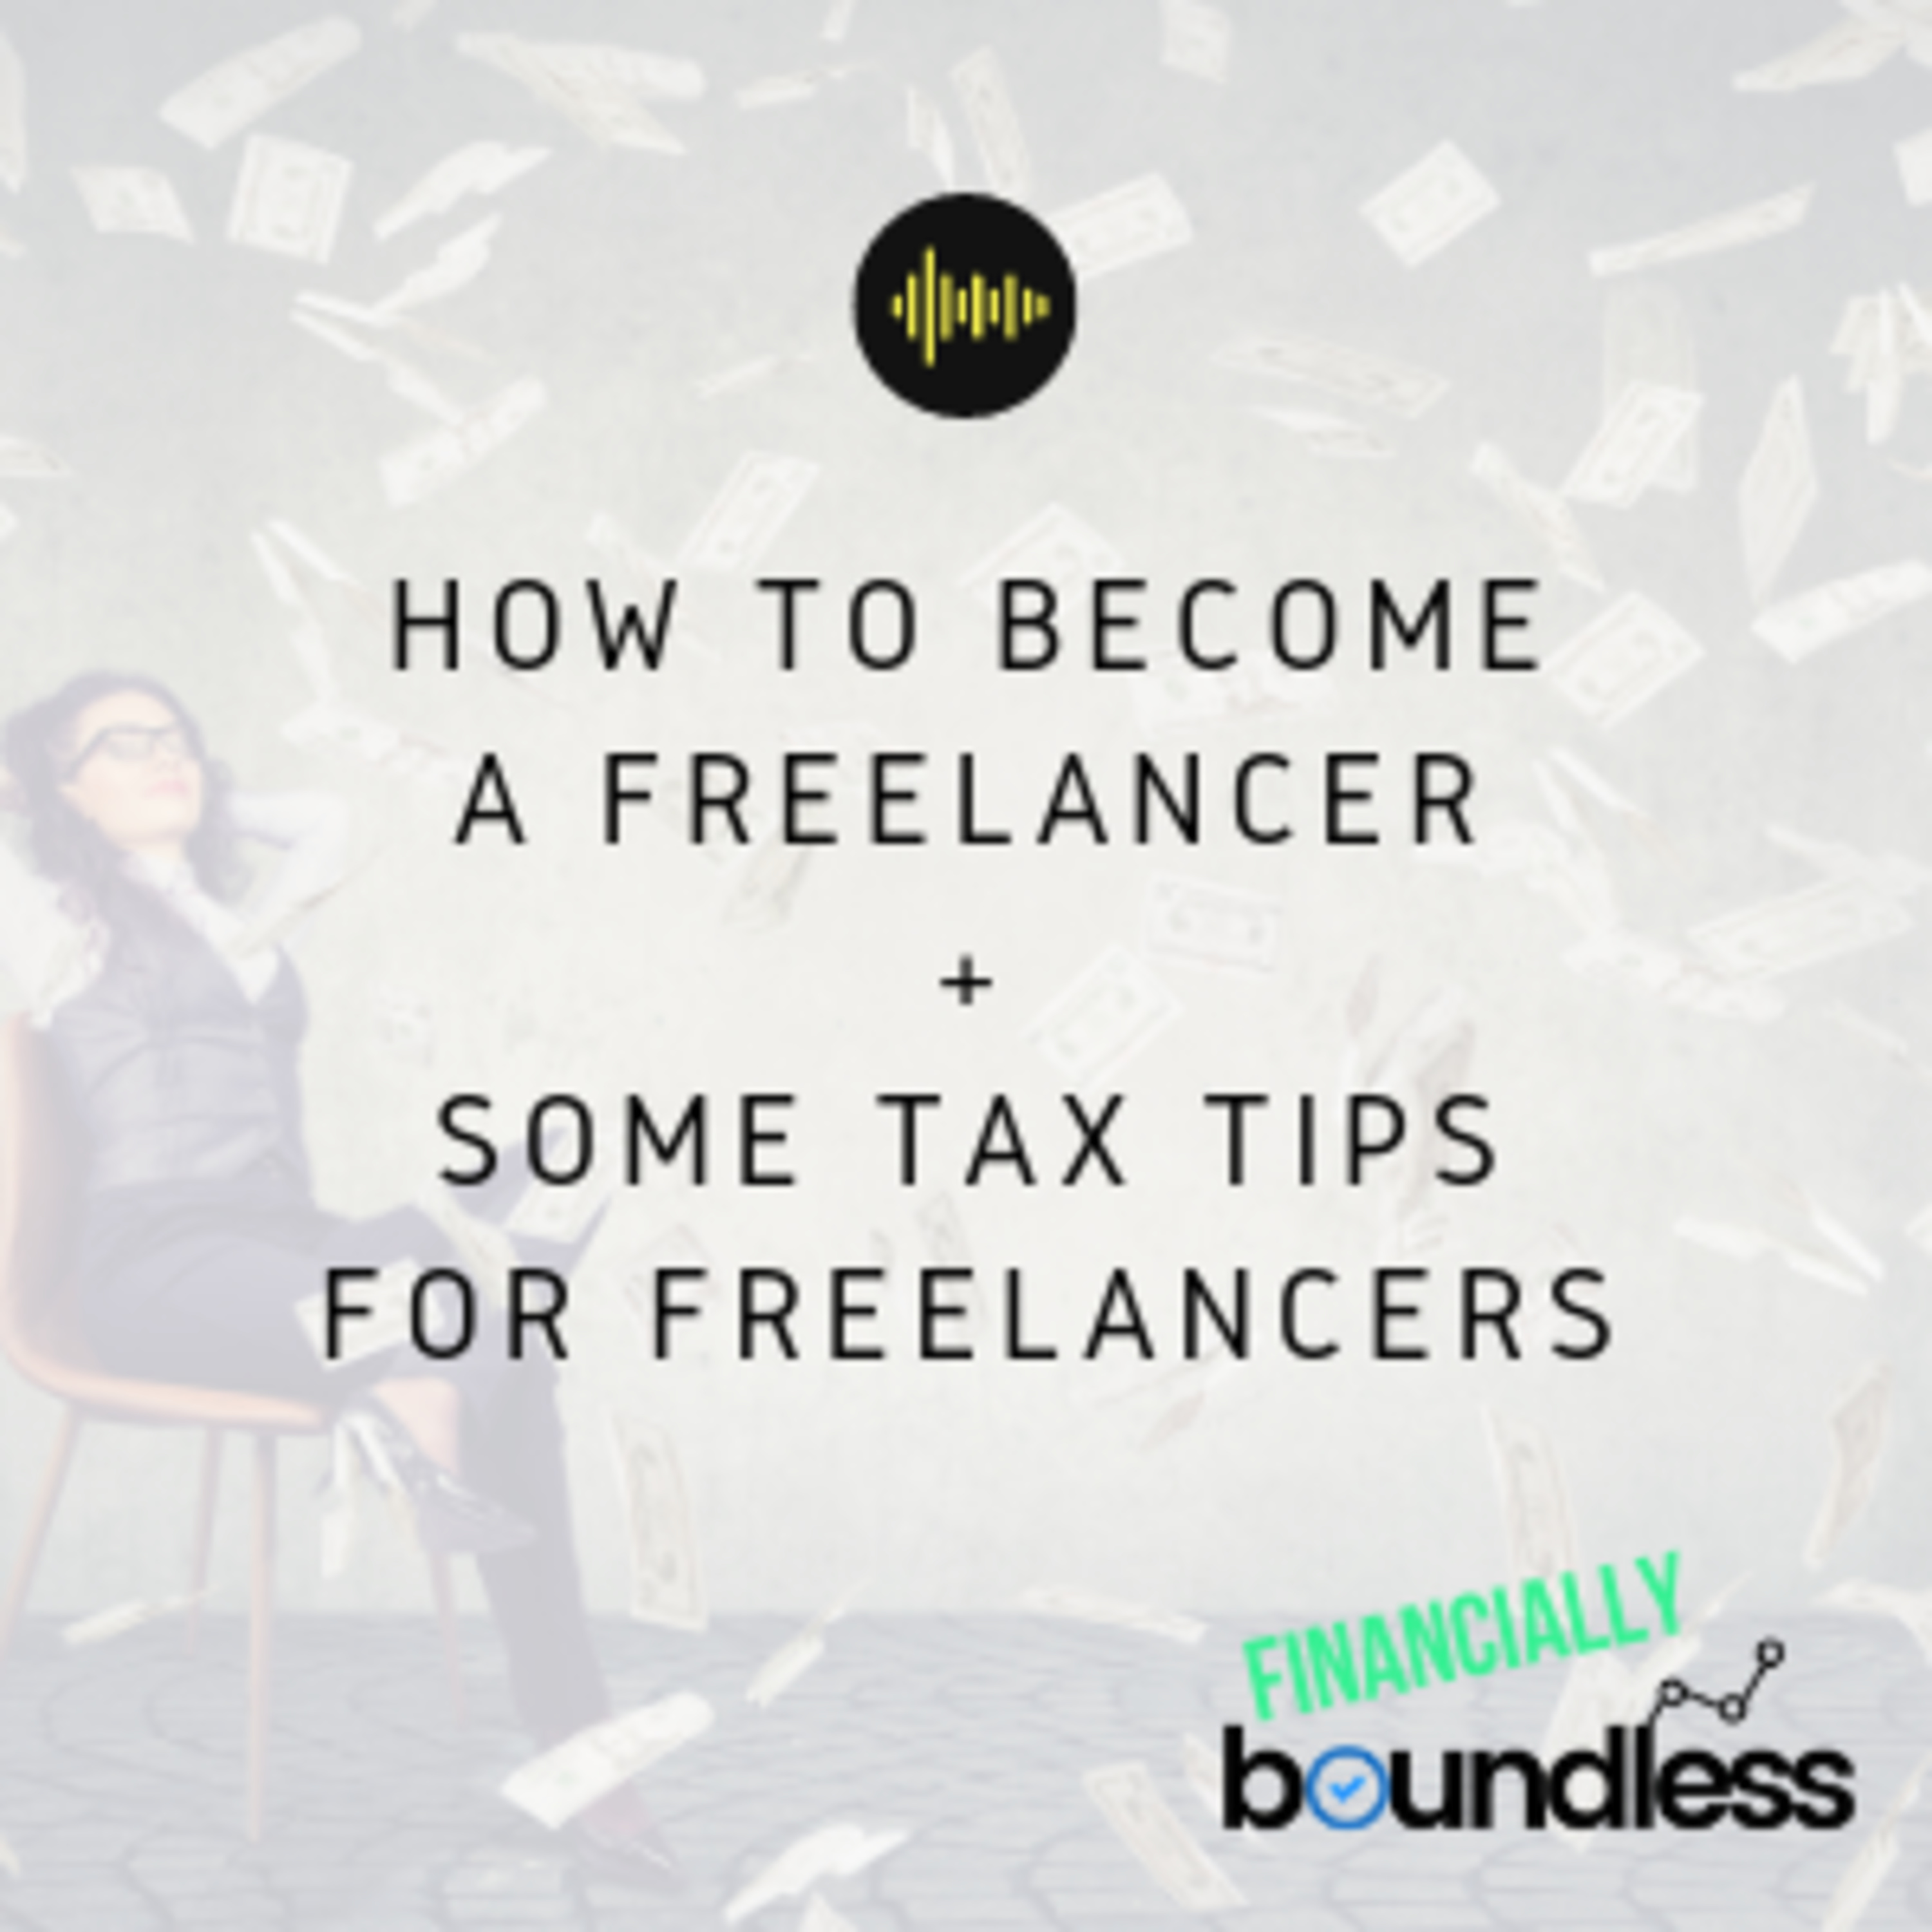 Episode 4: How to Become a Freelancer